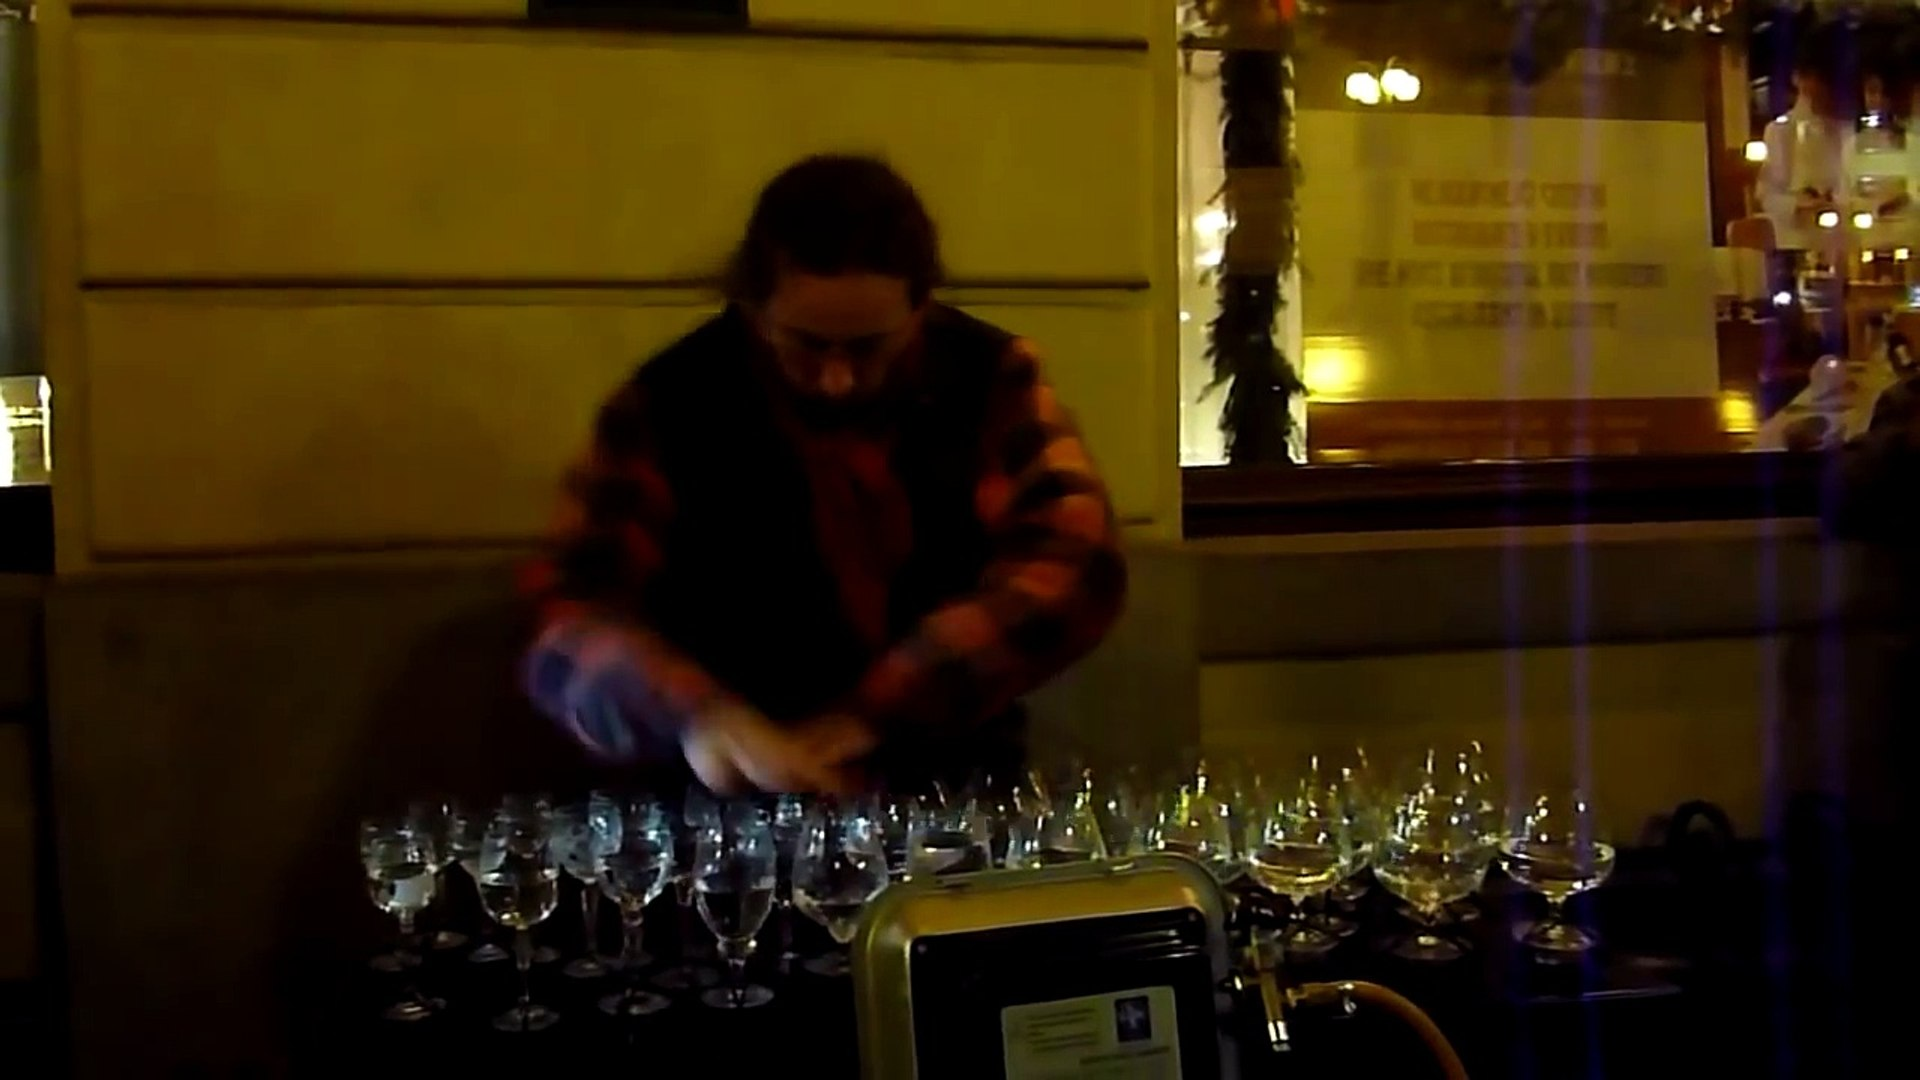 Street Musician Amazing - Playing Music with Glasses - Music Video | Street Song Artist